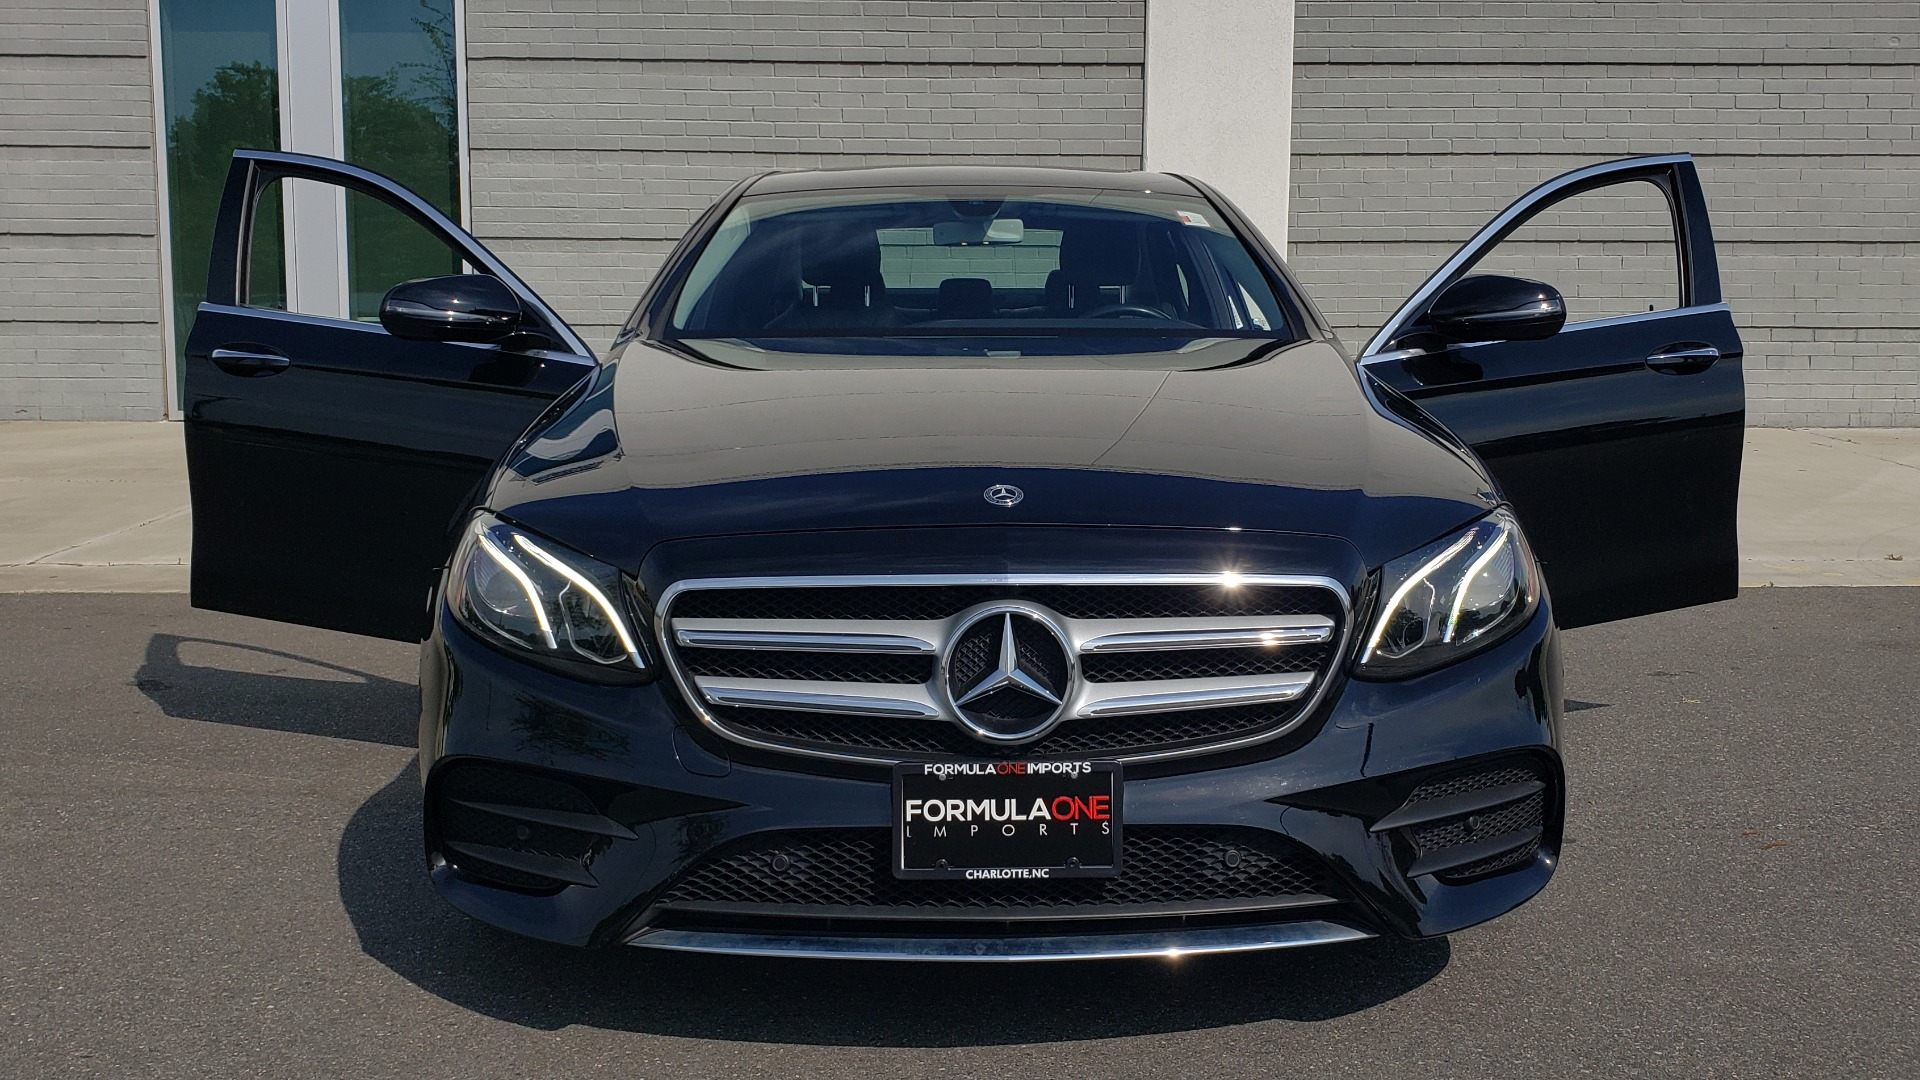 Used 2018 Mercedes-Benz E-CLASS E 300 PREMIUM / 4MATIC / NAV / SUNROOF / H/K SND / REARVIEW for sale $34,195 at Formula Imports in Charlotte NC 28227 20